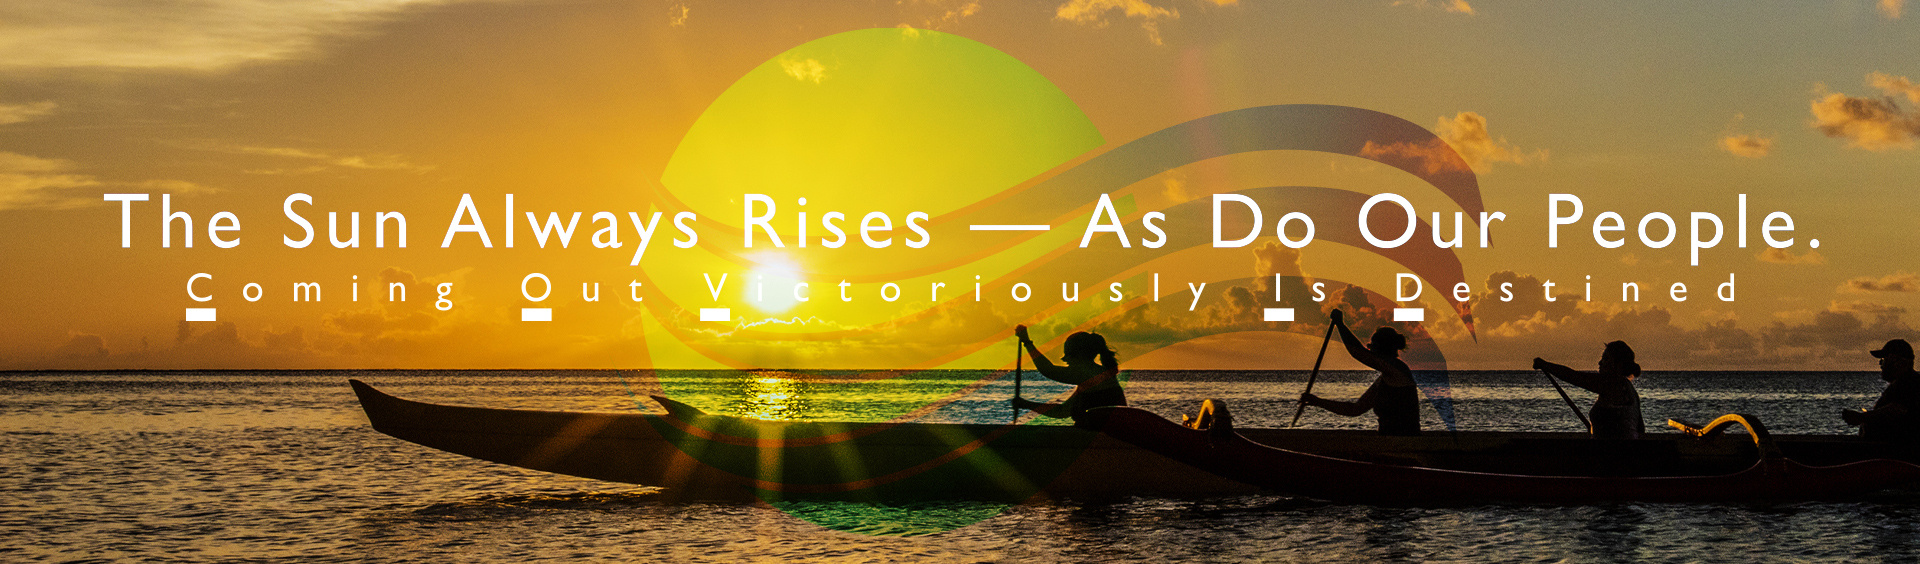 The Sun Always Rises - As Do Our People